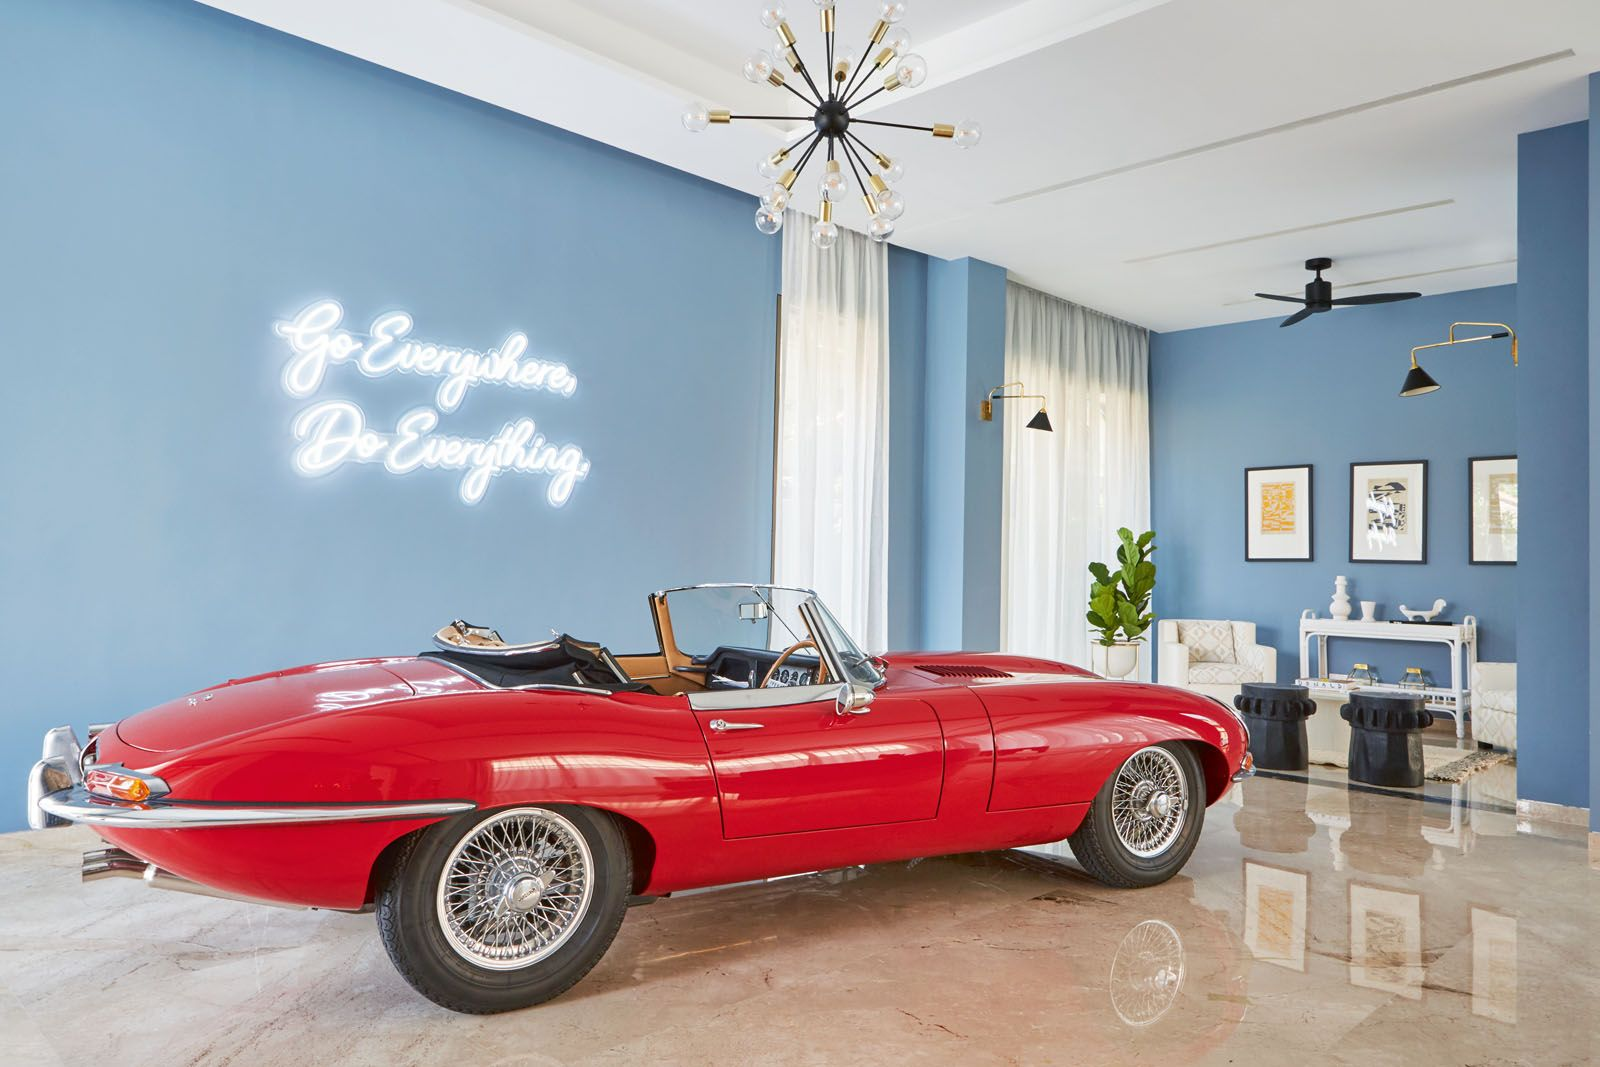 The red vintage sedan serves as the focal point of the living room